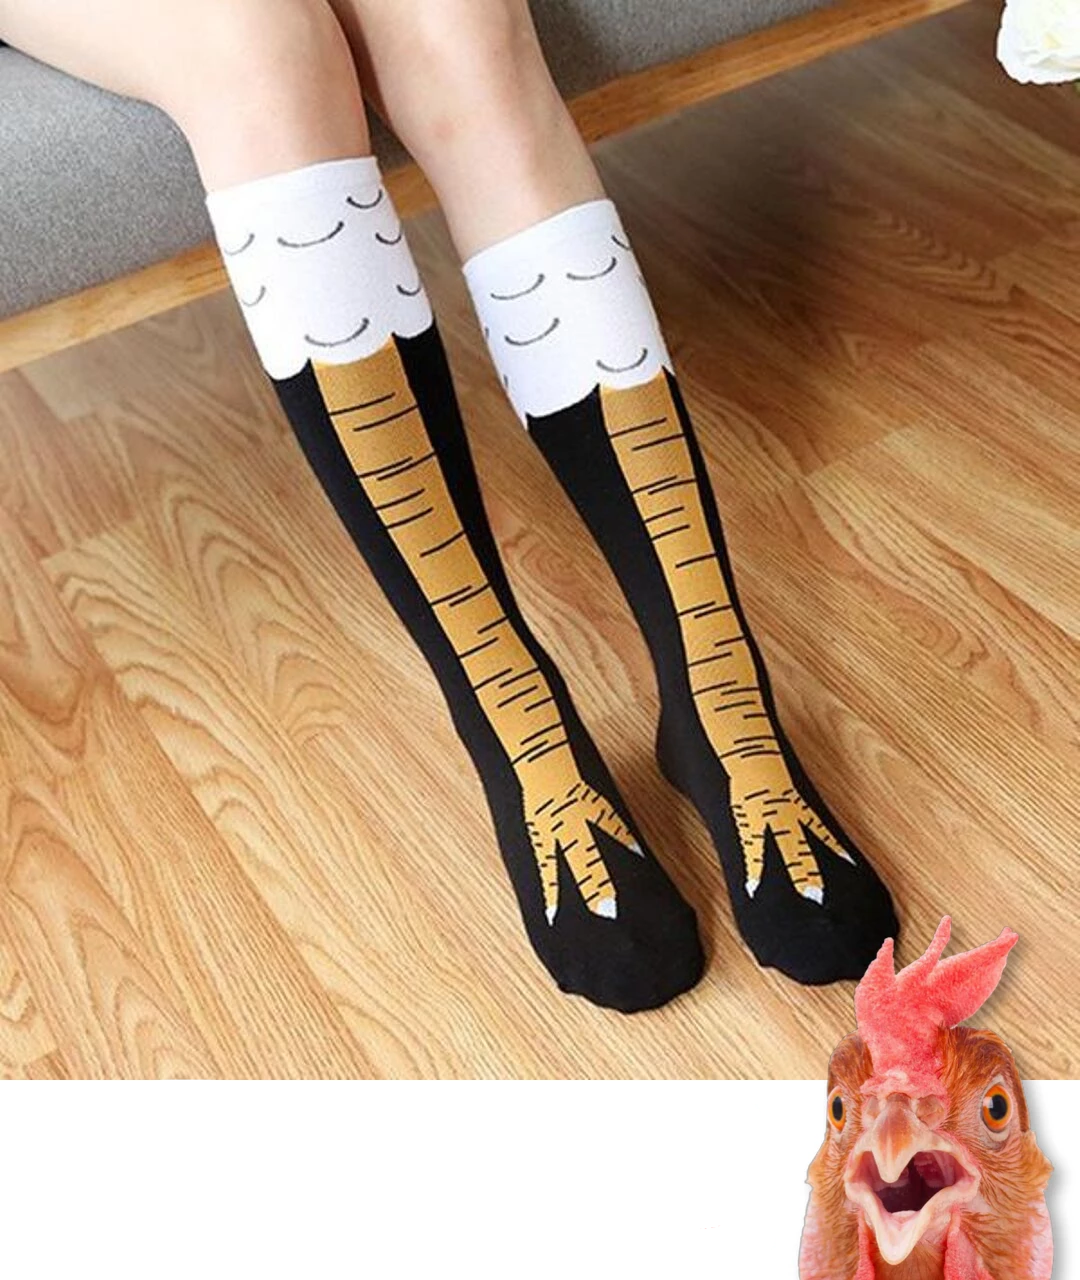 【BUY 3 GET 1 FREE & On-Time Delivery】Original Chicken Legs Socks